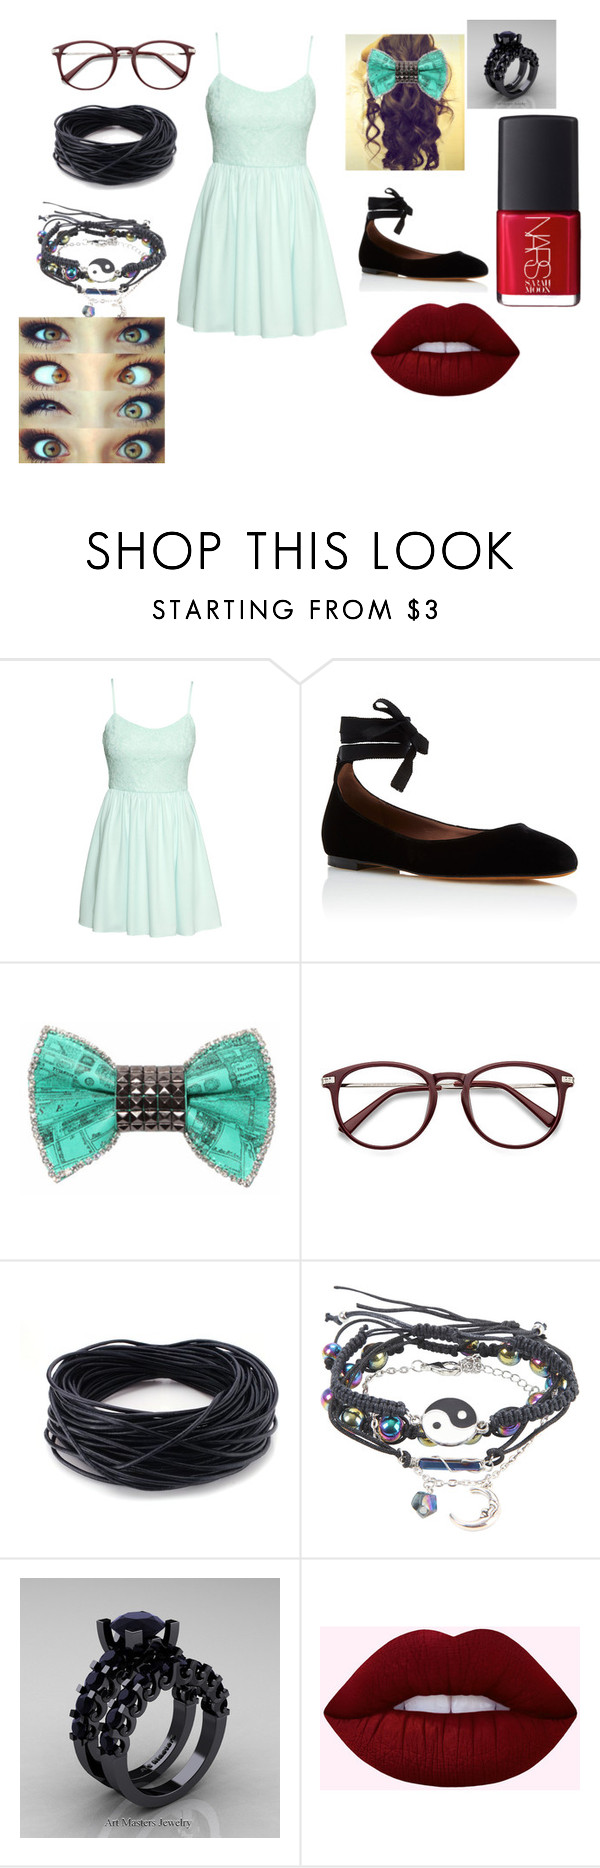 """Untitled #607"" by pooka515 on Polyvore featuring H&M, Tabitha Simmons, Bijoux de Famille, Modern Vintage and NARS Cosmetics"